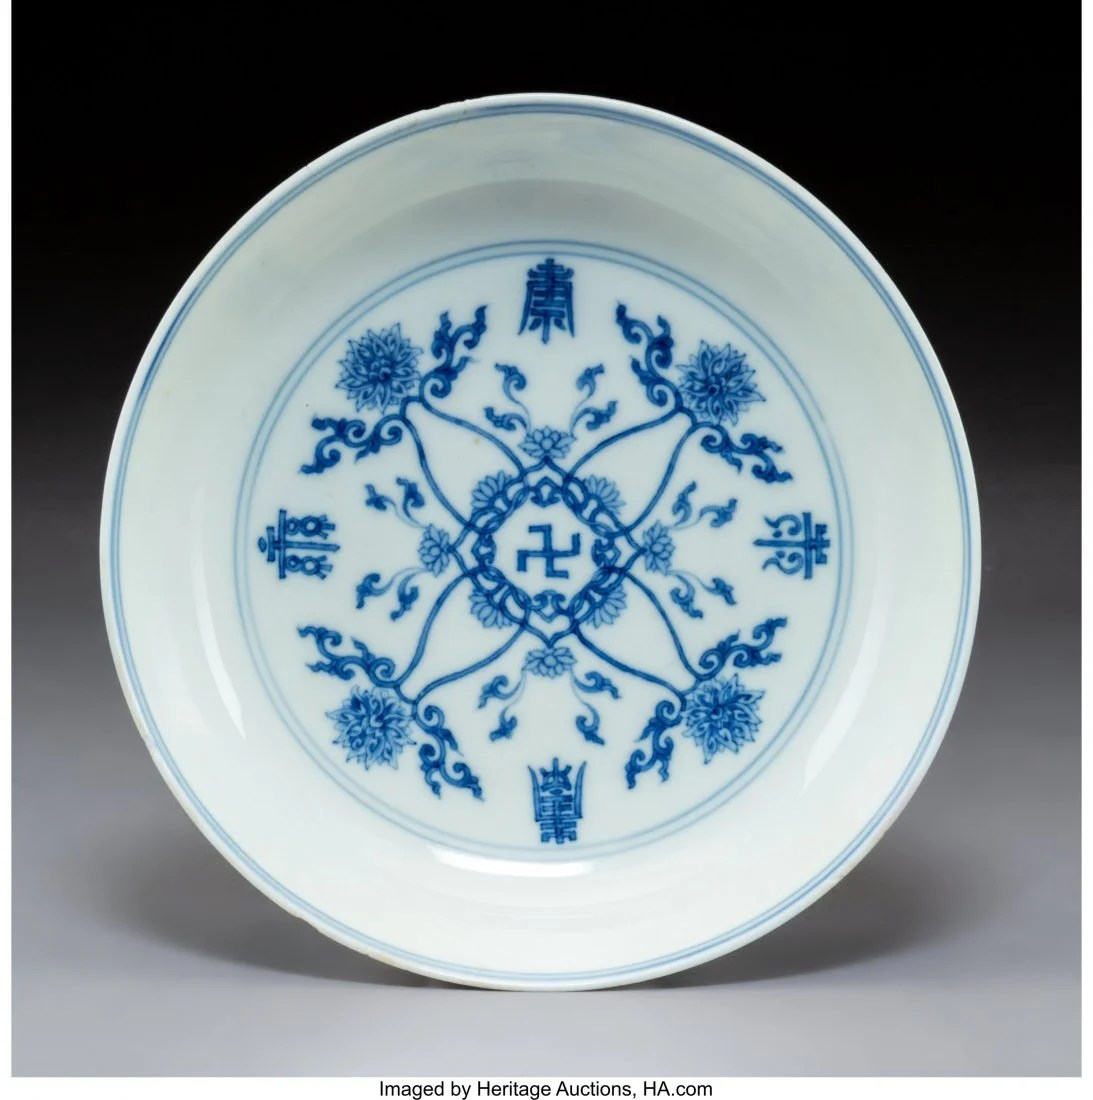 27058: A Chinese Blue and White Porcelain Dish, Qing Dy